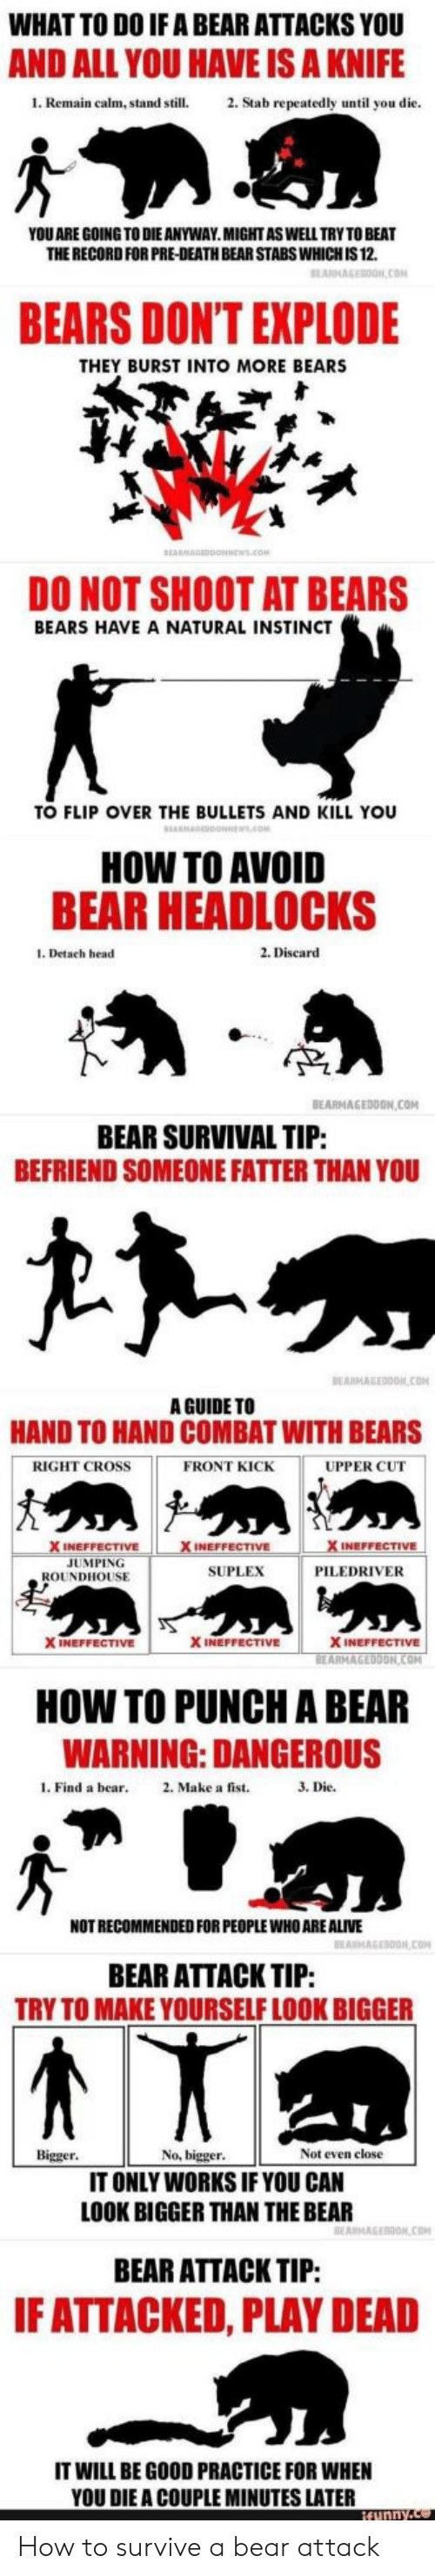 Guide To: WHAT TO DO IF A BEAR ATTACKS YOU  AND ALL YOU HAVE IS A KNIFE  1. Remain calm, stand still.2. Stab repeatedly until you die  YOU ARE GOING TO DIE ANYWAY.MIGHTASWELL TRY TO BEAT  THE RECORD FOR PRE-DEATH BEAR STABS WHICH IS 12.  BEARS DONT EXPLODE  THEY BURST INTO MORE BEARS  DO NOT SHOOT AT BEARS  BEARS HAVE A NATURAL INSTINCT  TO FLIP OVER THE BULLETS AND KILL YOU  HOW TO AVOID  BEAR HEADLOCKS  1. Detach head  2. Discard  TP  BEARMAGEDDON COM  BEAR SURVIVAL TIP  BEFRIEND SOMEONE FATTER THAN YOU  A GUIDE TO  HAND TO HAND COMBAT WITH BEARS  RIGHT CROSS  FRONT KICK  UPPER CUT  INEFFECTIVE  JUMPING  SUPLEX  PILEDRIVER  ROUNDHOUSE  X INEFFECTIVE  X INEFFECTIVE  ON  HOW TO PUNCH A BEAR  WARNING: DANGEROUS  l. Find a bear 2. Make a fist.  3. Die.  NOT RECOMMENDED FOR PEOPLE WHO ARE ALIVE  BEAR ATTACK TIP:  TRY TO MAKE YOURSELF LOOK BIGGER  Bigger  No, bigger  Not even close  IT ONLY WORKS IF YOU CAN  LOOK BIGGER THAN THE BEAR  BEAR ATTACK TIP:  F ATTACKED, PLAY DEAD  IT WILL BE GOOD PRACTICE FOR WHEN  YOU DIE A COUPLE MINUTES LATER How to survive a bear attack